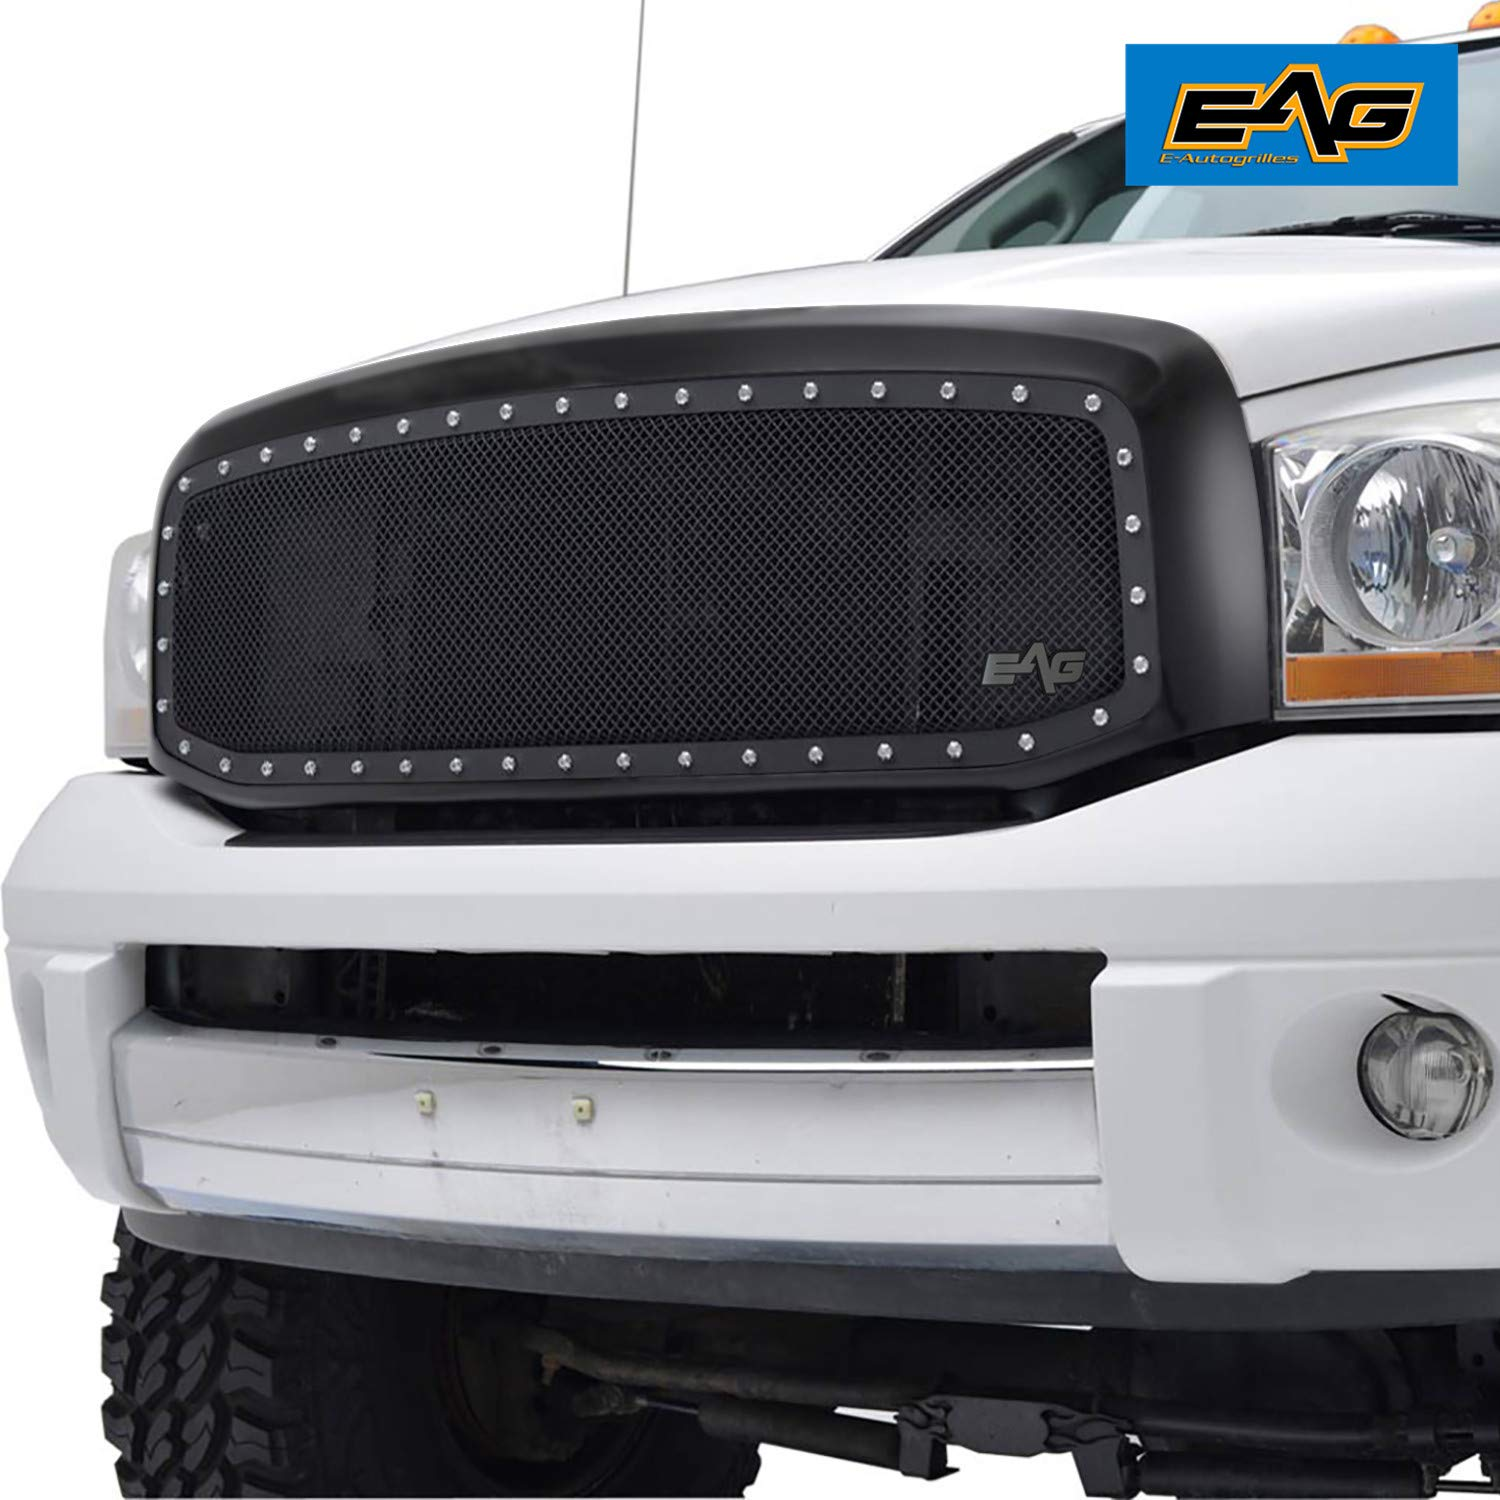 EAG Stainless Steel Wire Mesh Replacement Fit for 06-09 Dodge Ram 1500/2500/3500 Grille by EAG